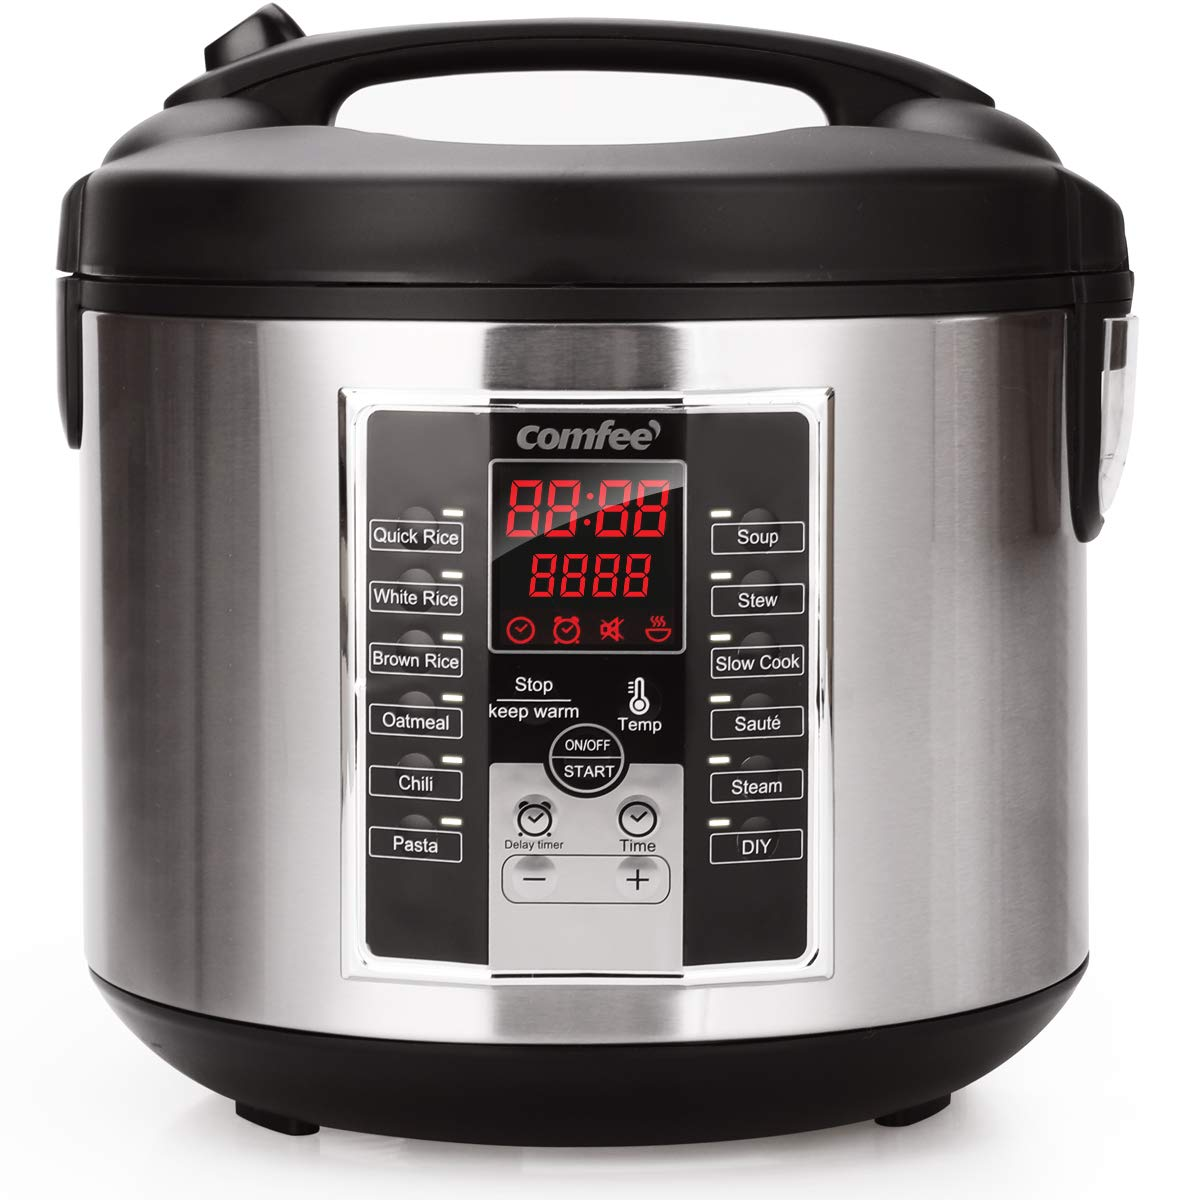 Rice Cooker, 6-in-1 Electric Hot Pots,Slow Cooker, Sauté, stew pot,soup pot,Steamer, Food Warmer 650W by Comfee Sauté COMFEE' MB-M25